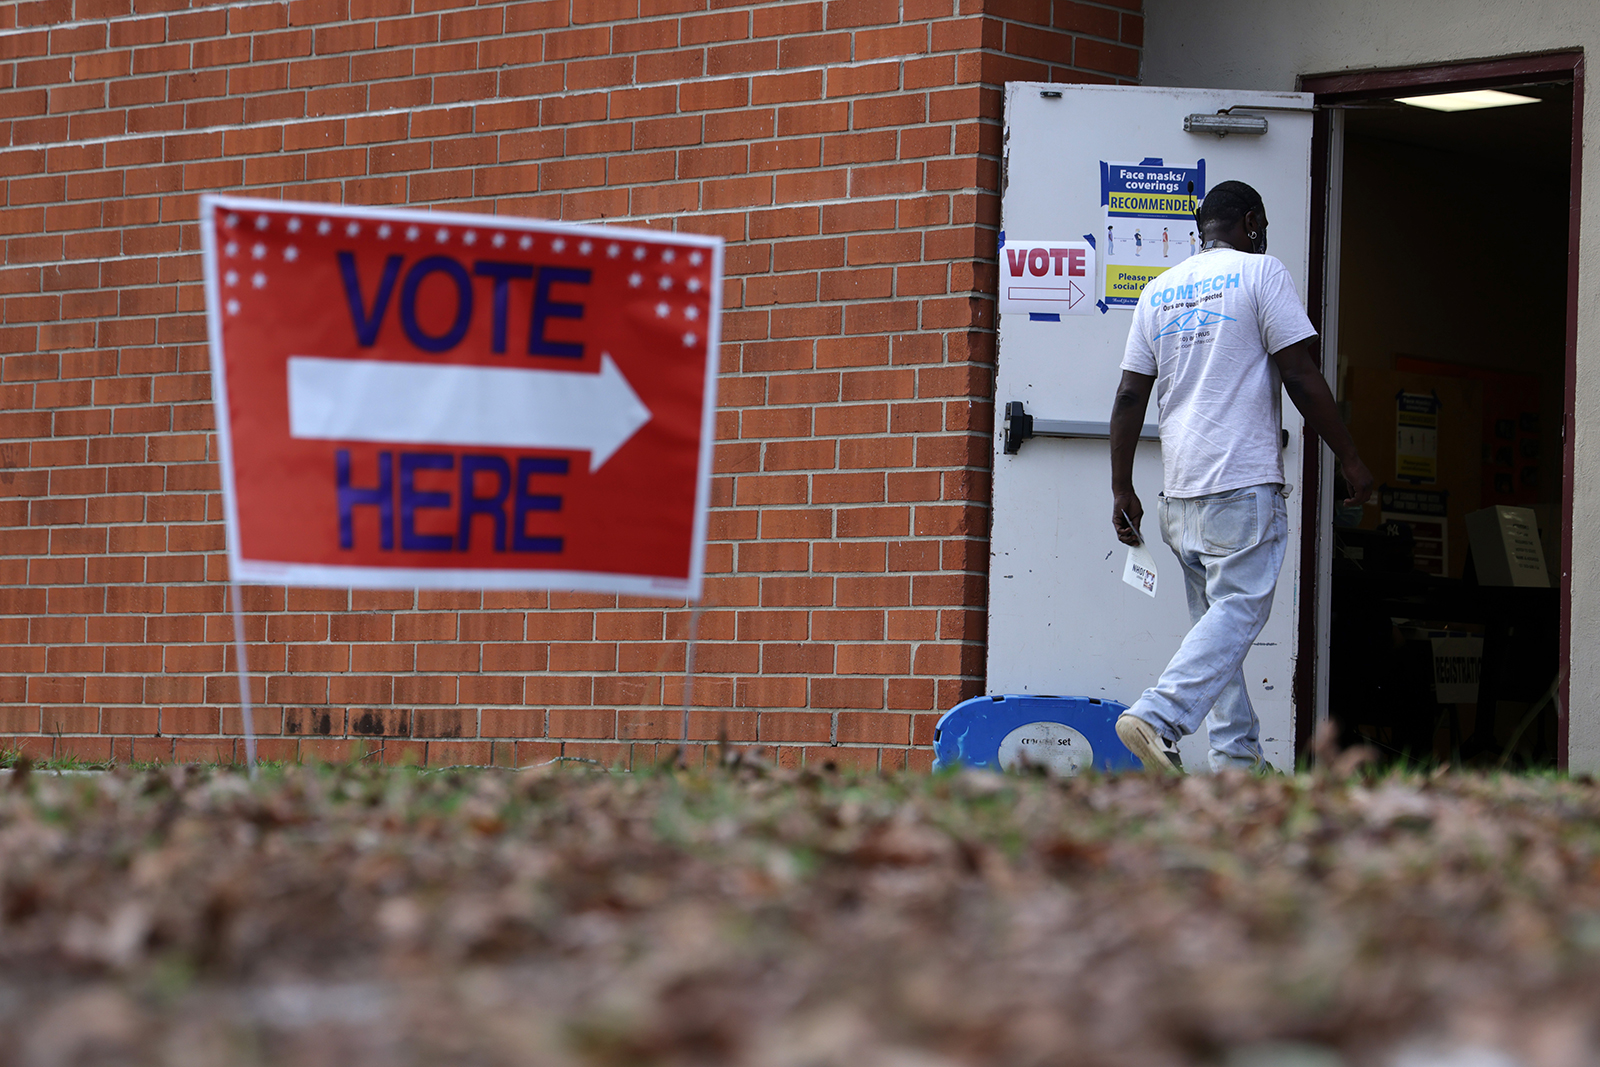 A man walks into an early voting location at Massey Hill Recreation Center & Park on October 29, 2020 in Fayetteville, North Carolina.